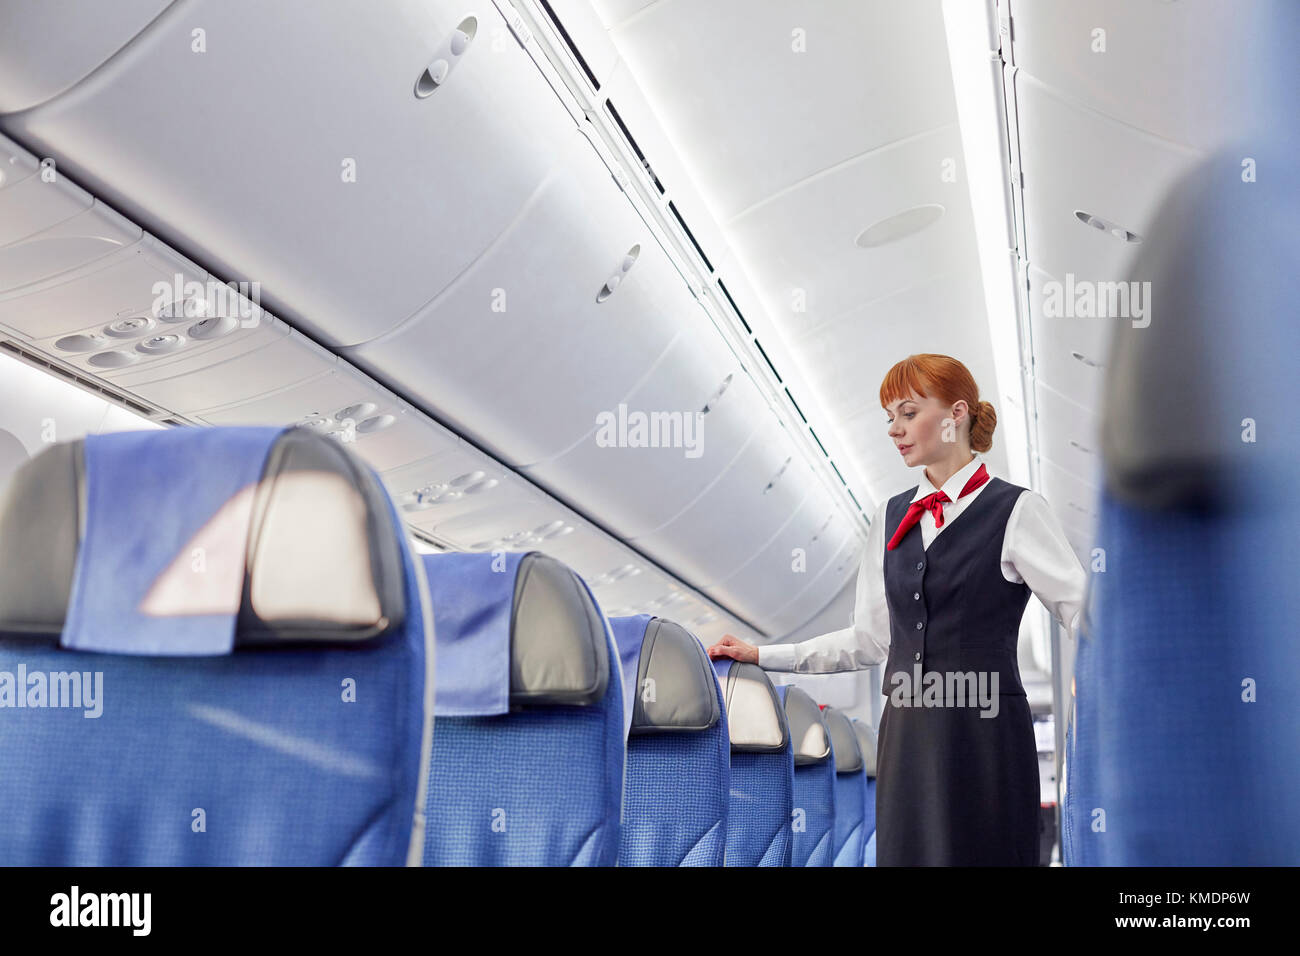 Female flight attendant on empty airplane - Stock Image